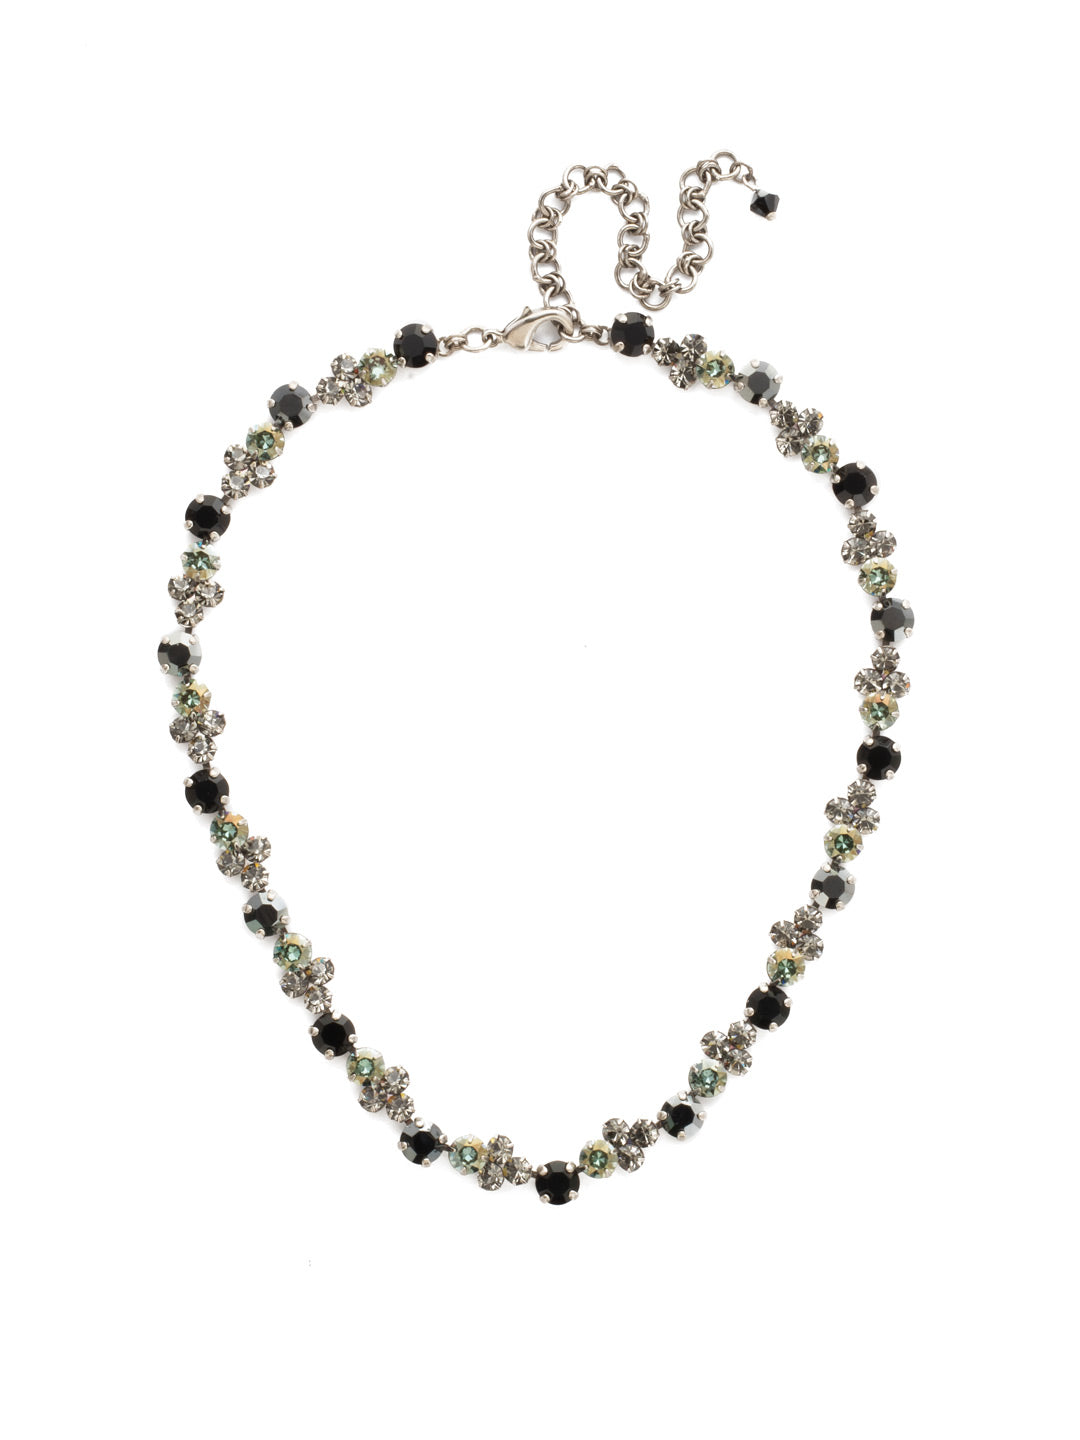 Wisteria Necklace - NDQ36ASBON